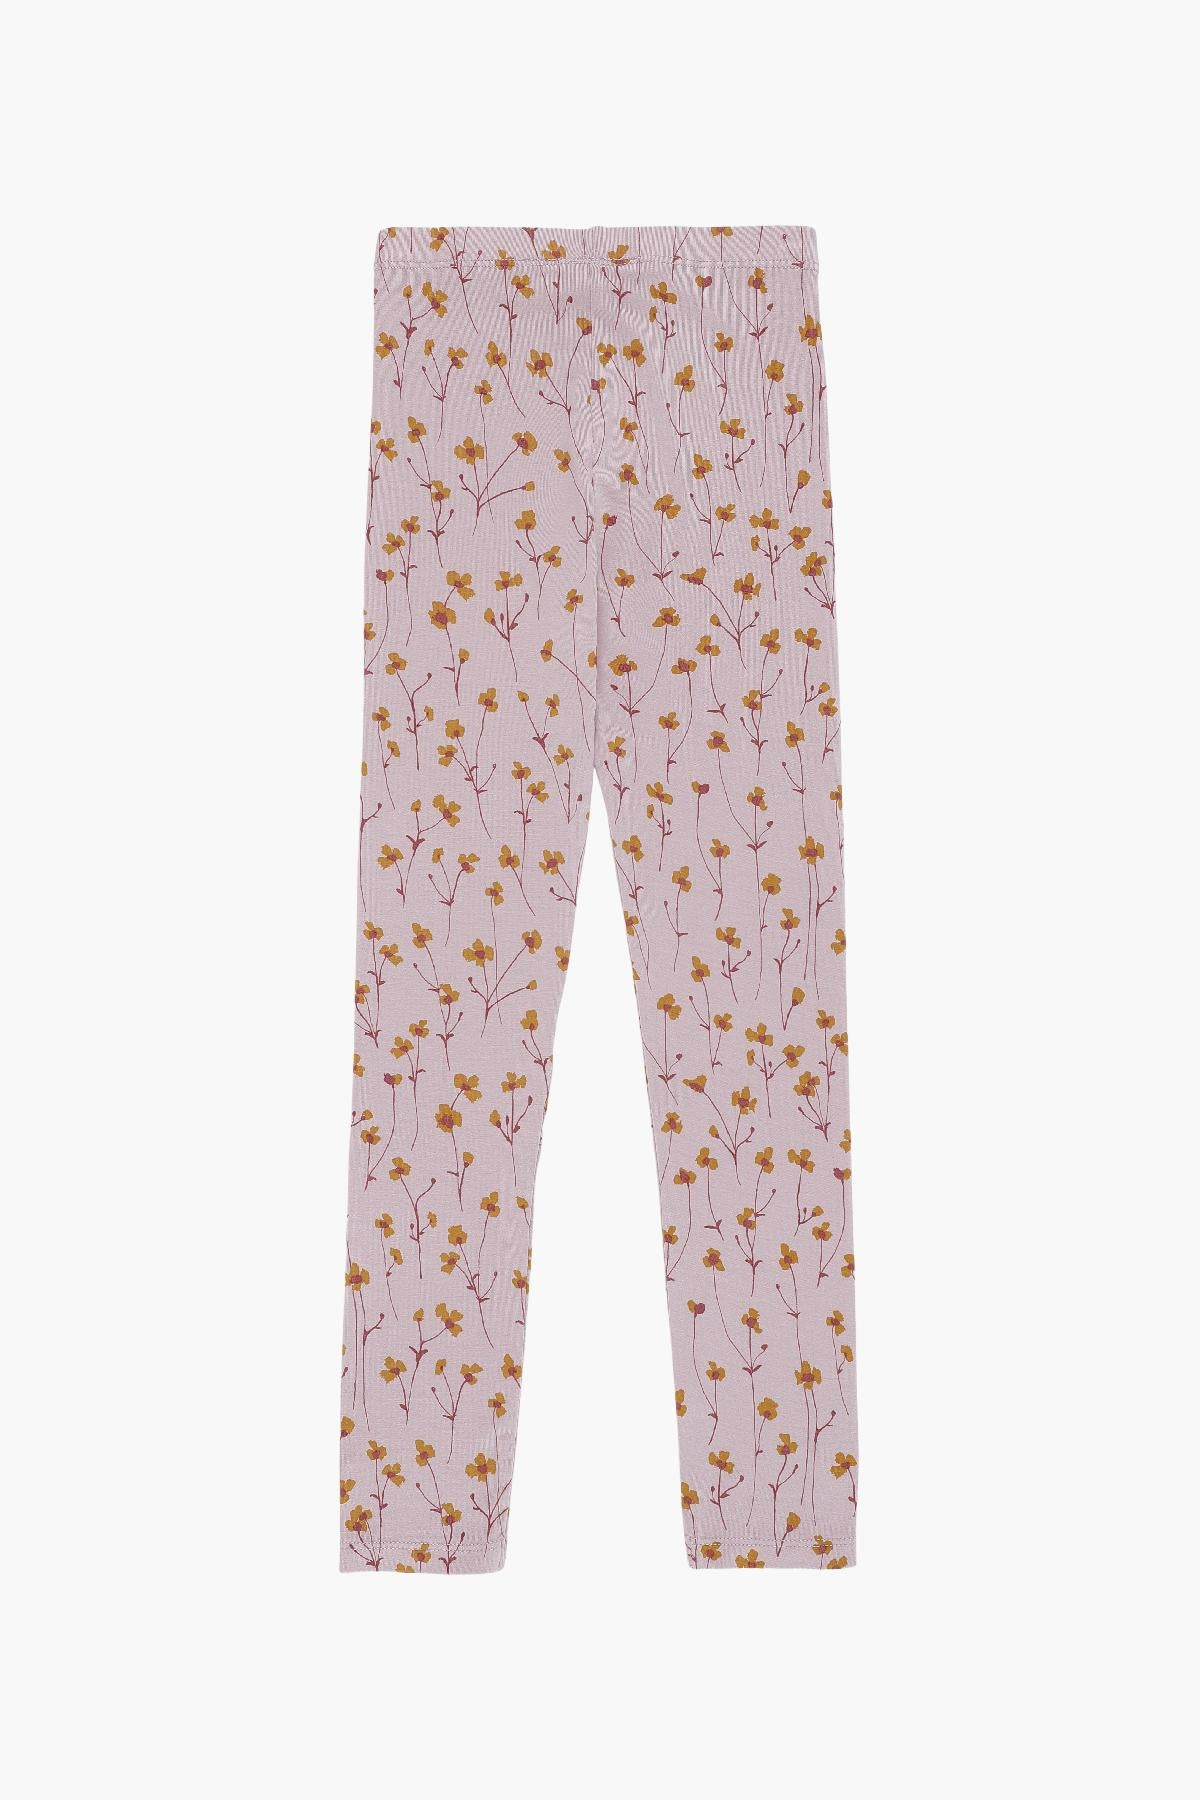 Soft Gallery Paula Girls Leggings - Dawn Pink